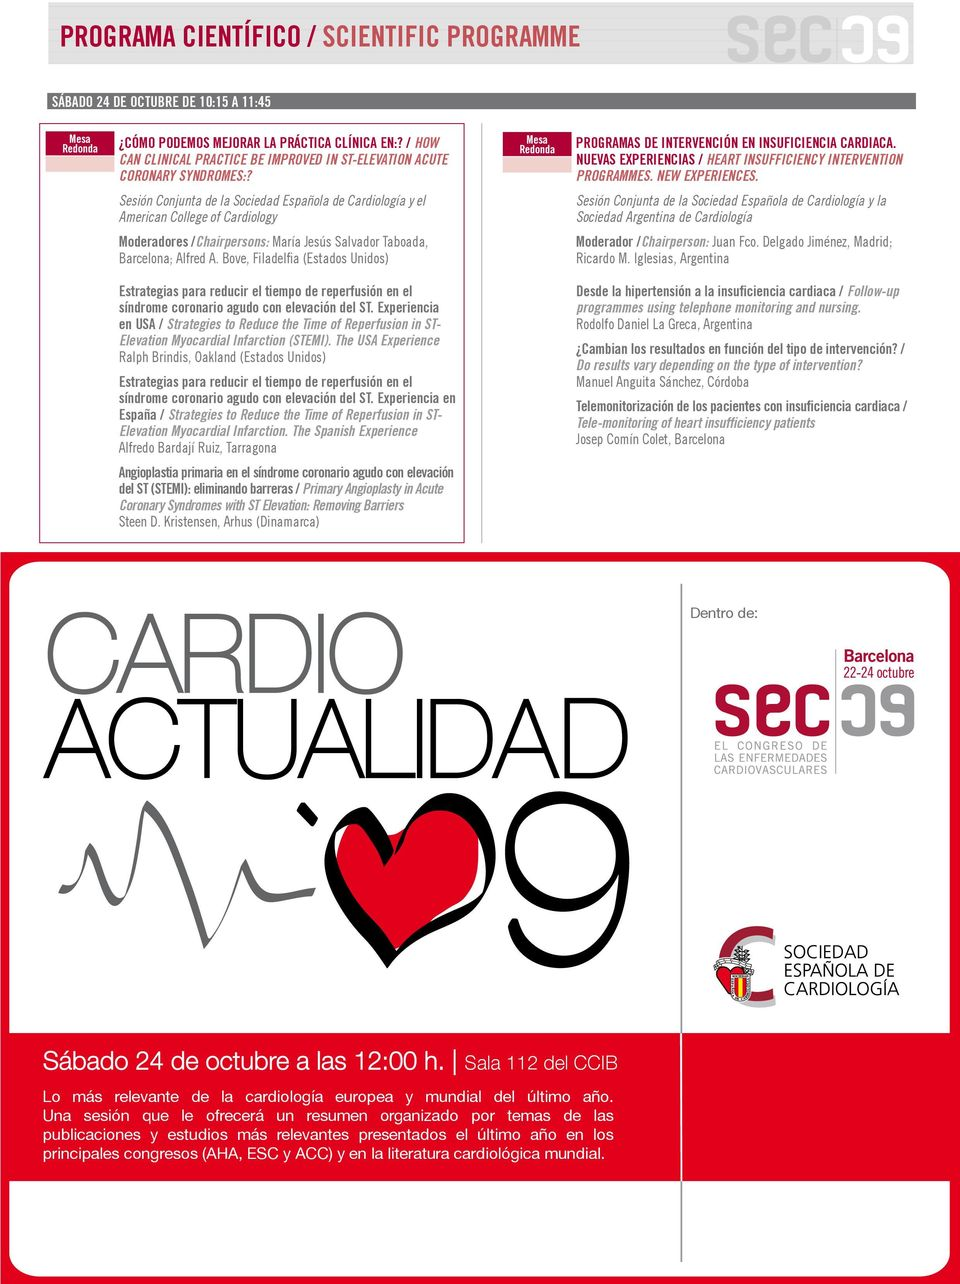 Nuevas experiencias / Heart insufficiency intervention programmes. New experiences.